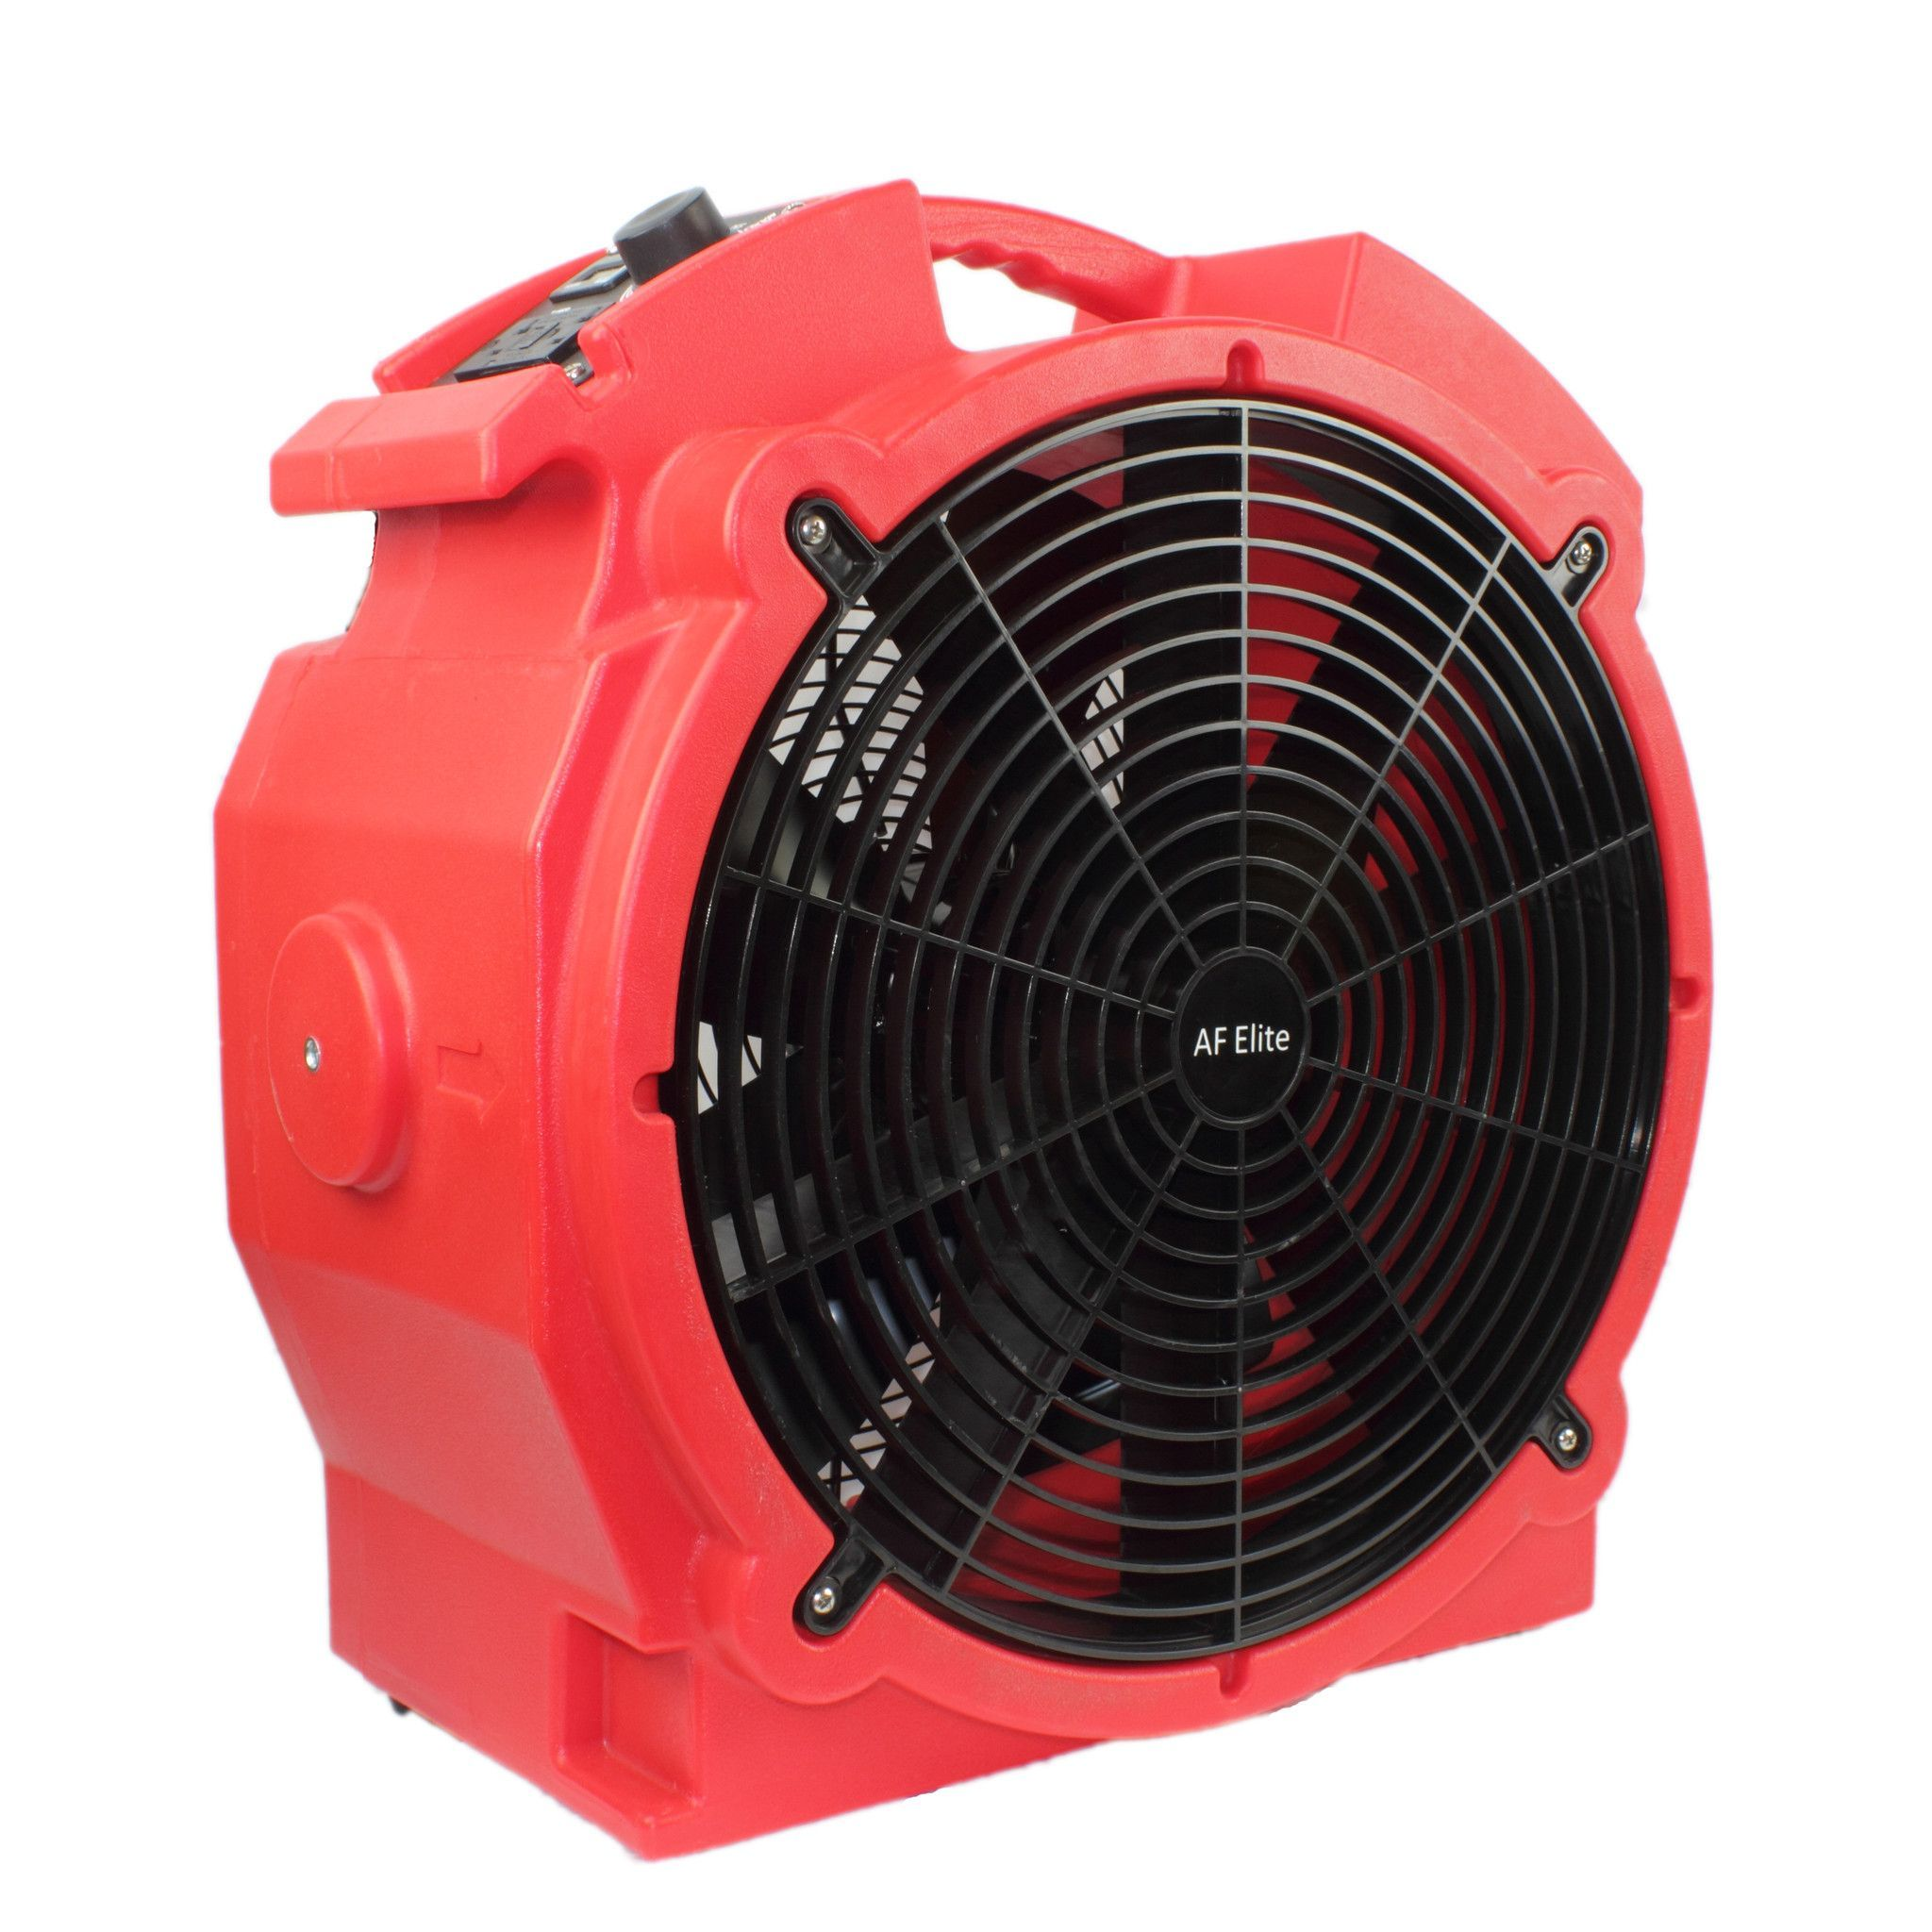 AF Elite Axial Air Mover Movers, Controller design, Axial